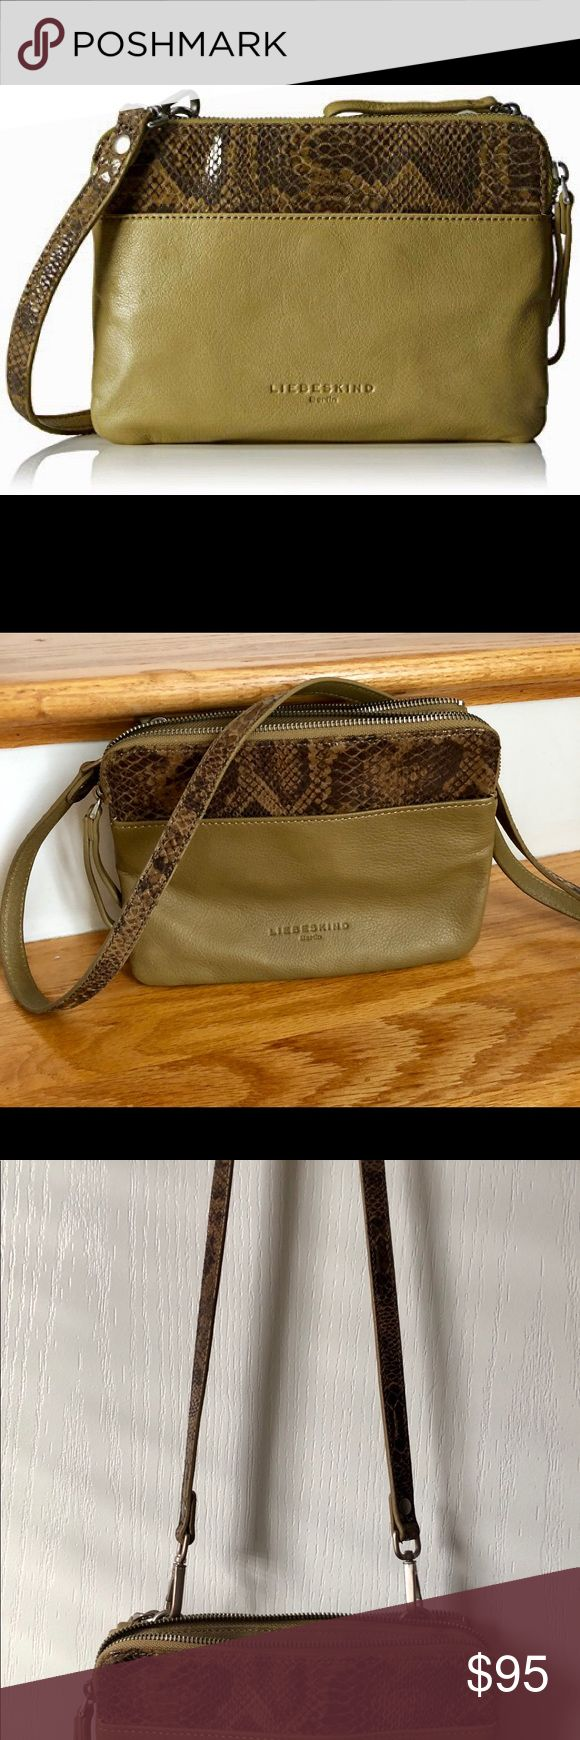 Liebeskind Berlin Karen green / snake cross body used one time like new soft leather removable strap to be used as clutch camouflage green and snake details multi compartments  interior pockets strap 24.5 Liebeskind Bags Crossbody Bags